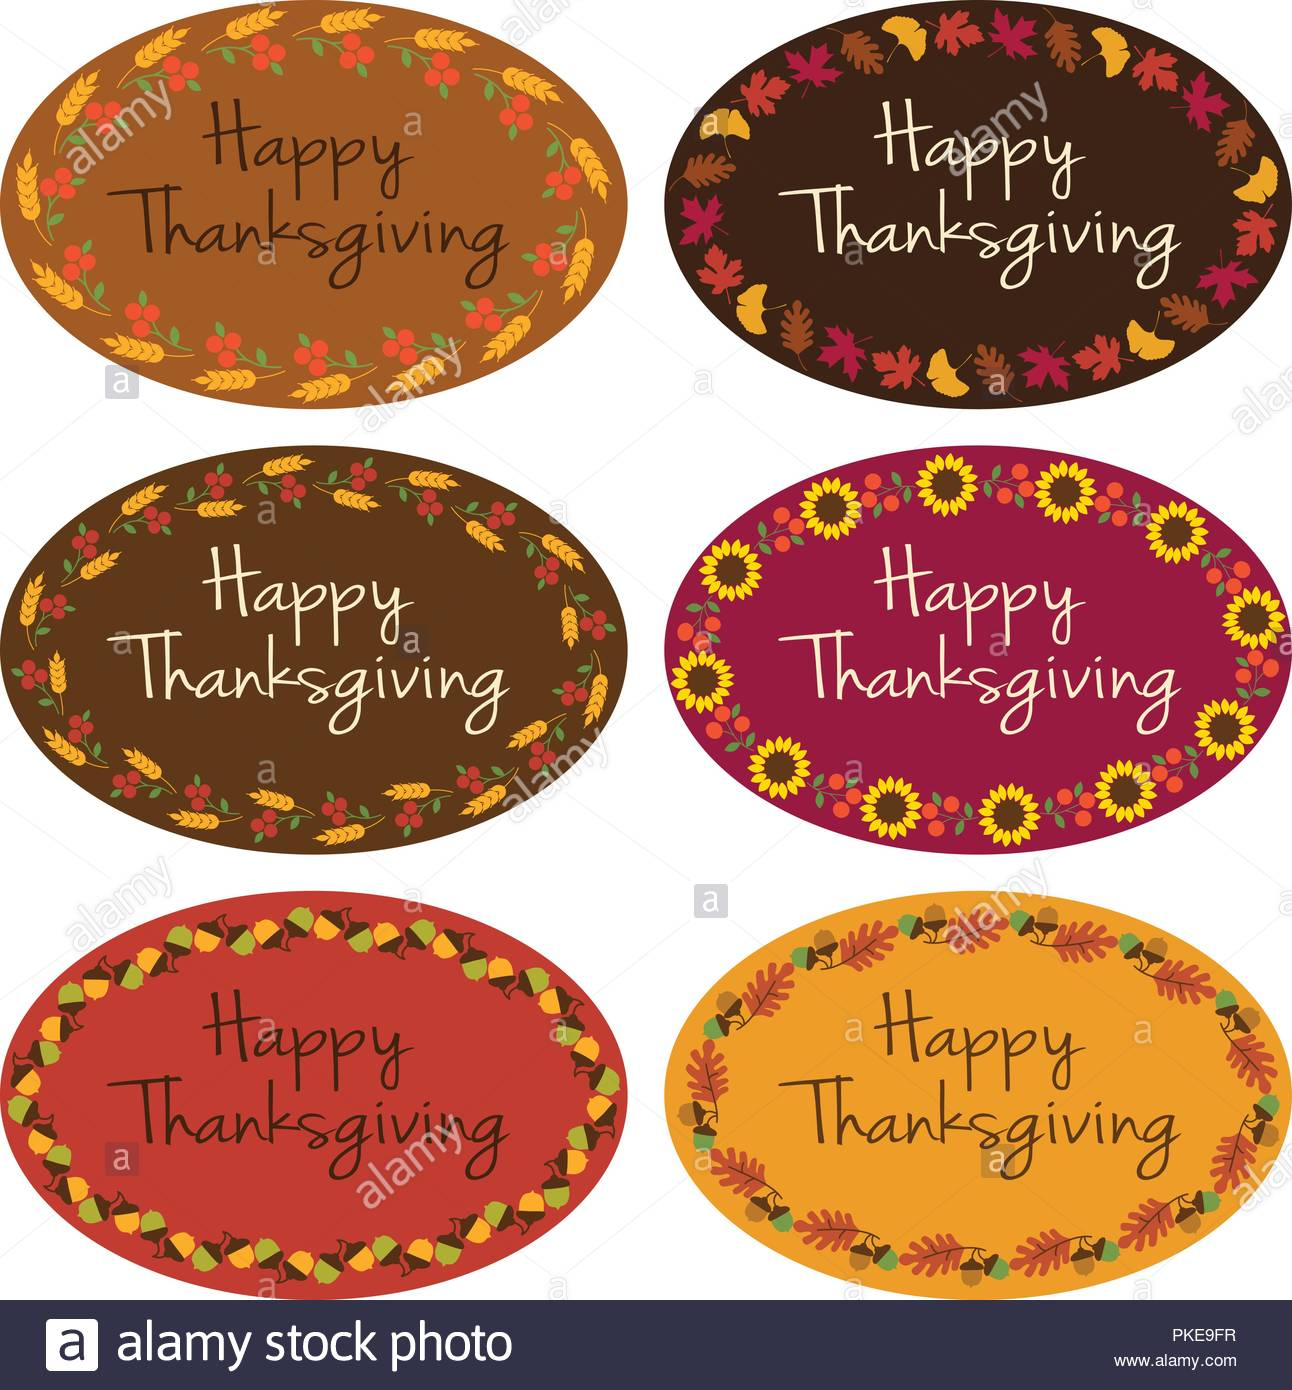 happy thanksgiving vector oval labels with border patterns stock